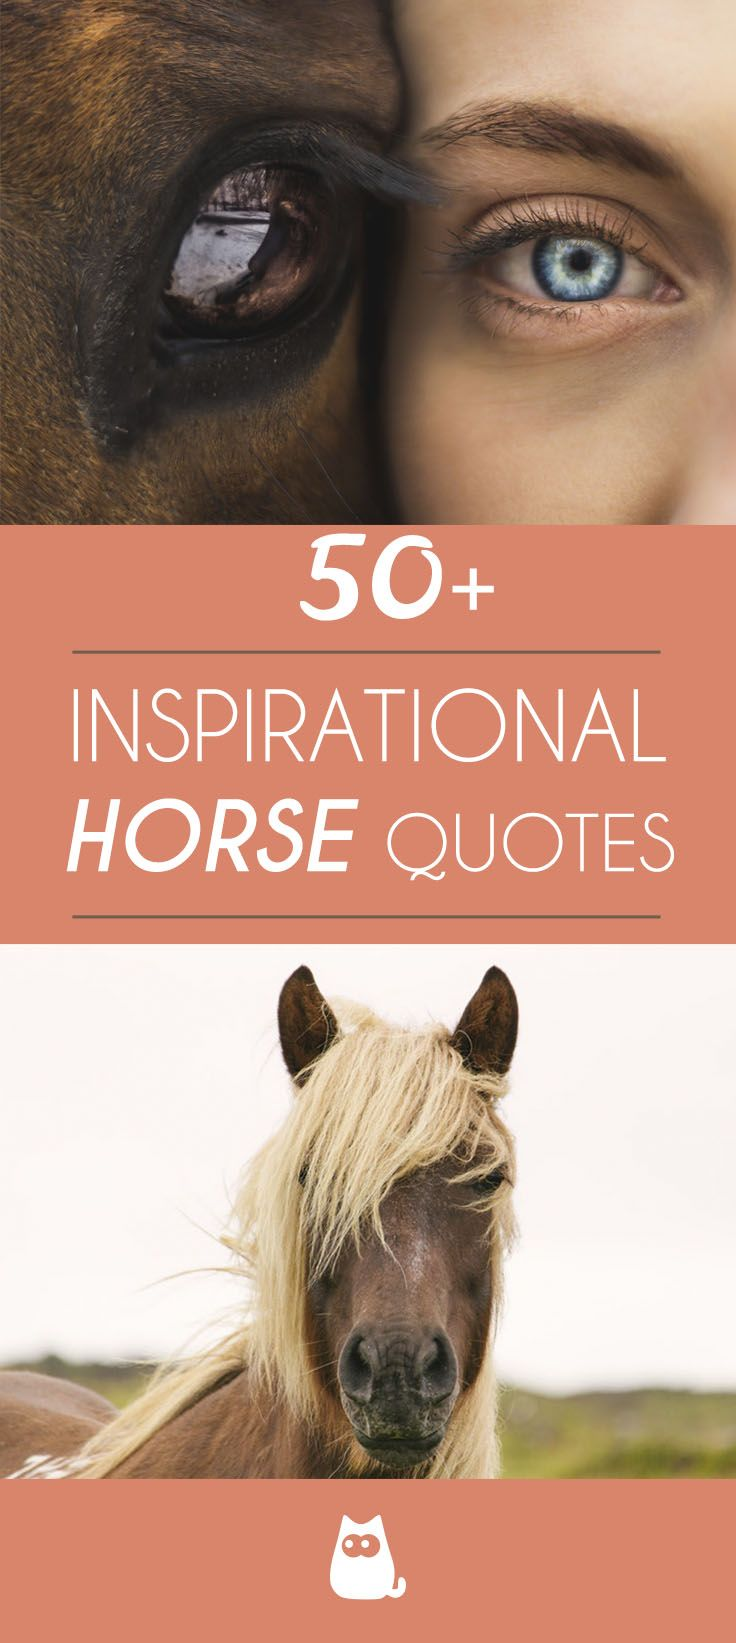 Inspirational Horse Quotes Over 50 Inspirational Horse Quotes Horse Quotes Horse Quotes Funny